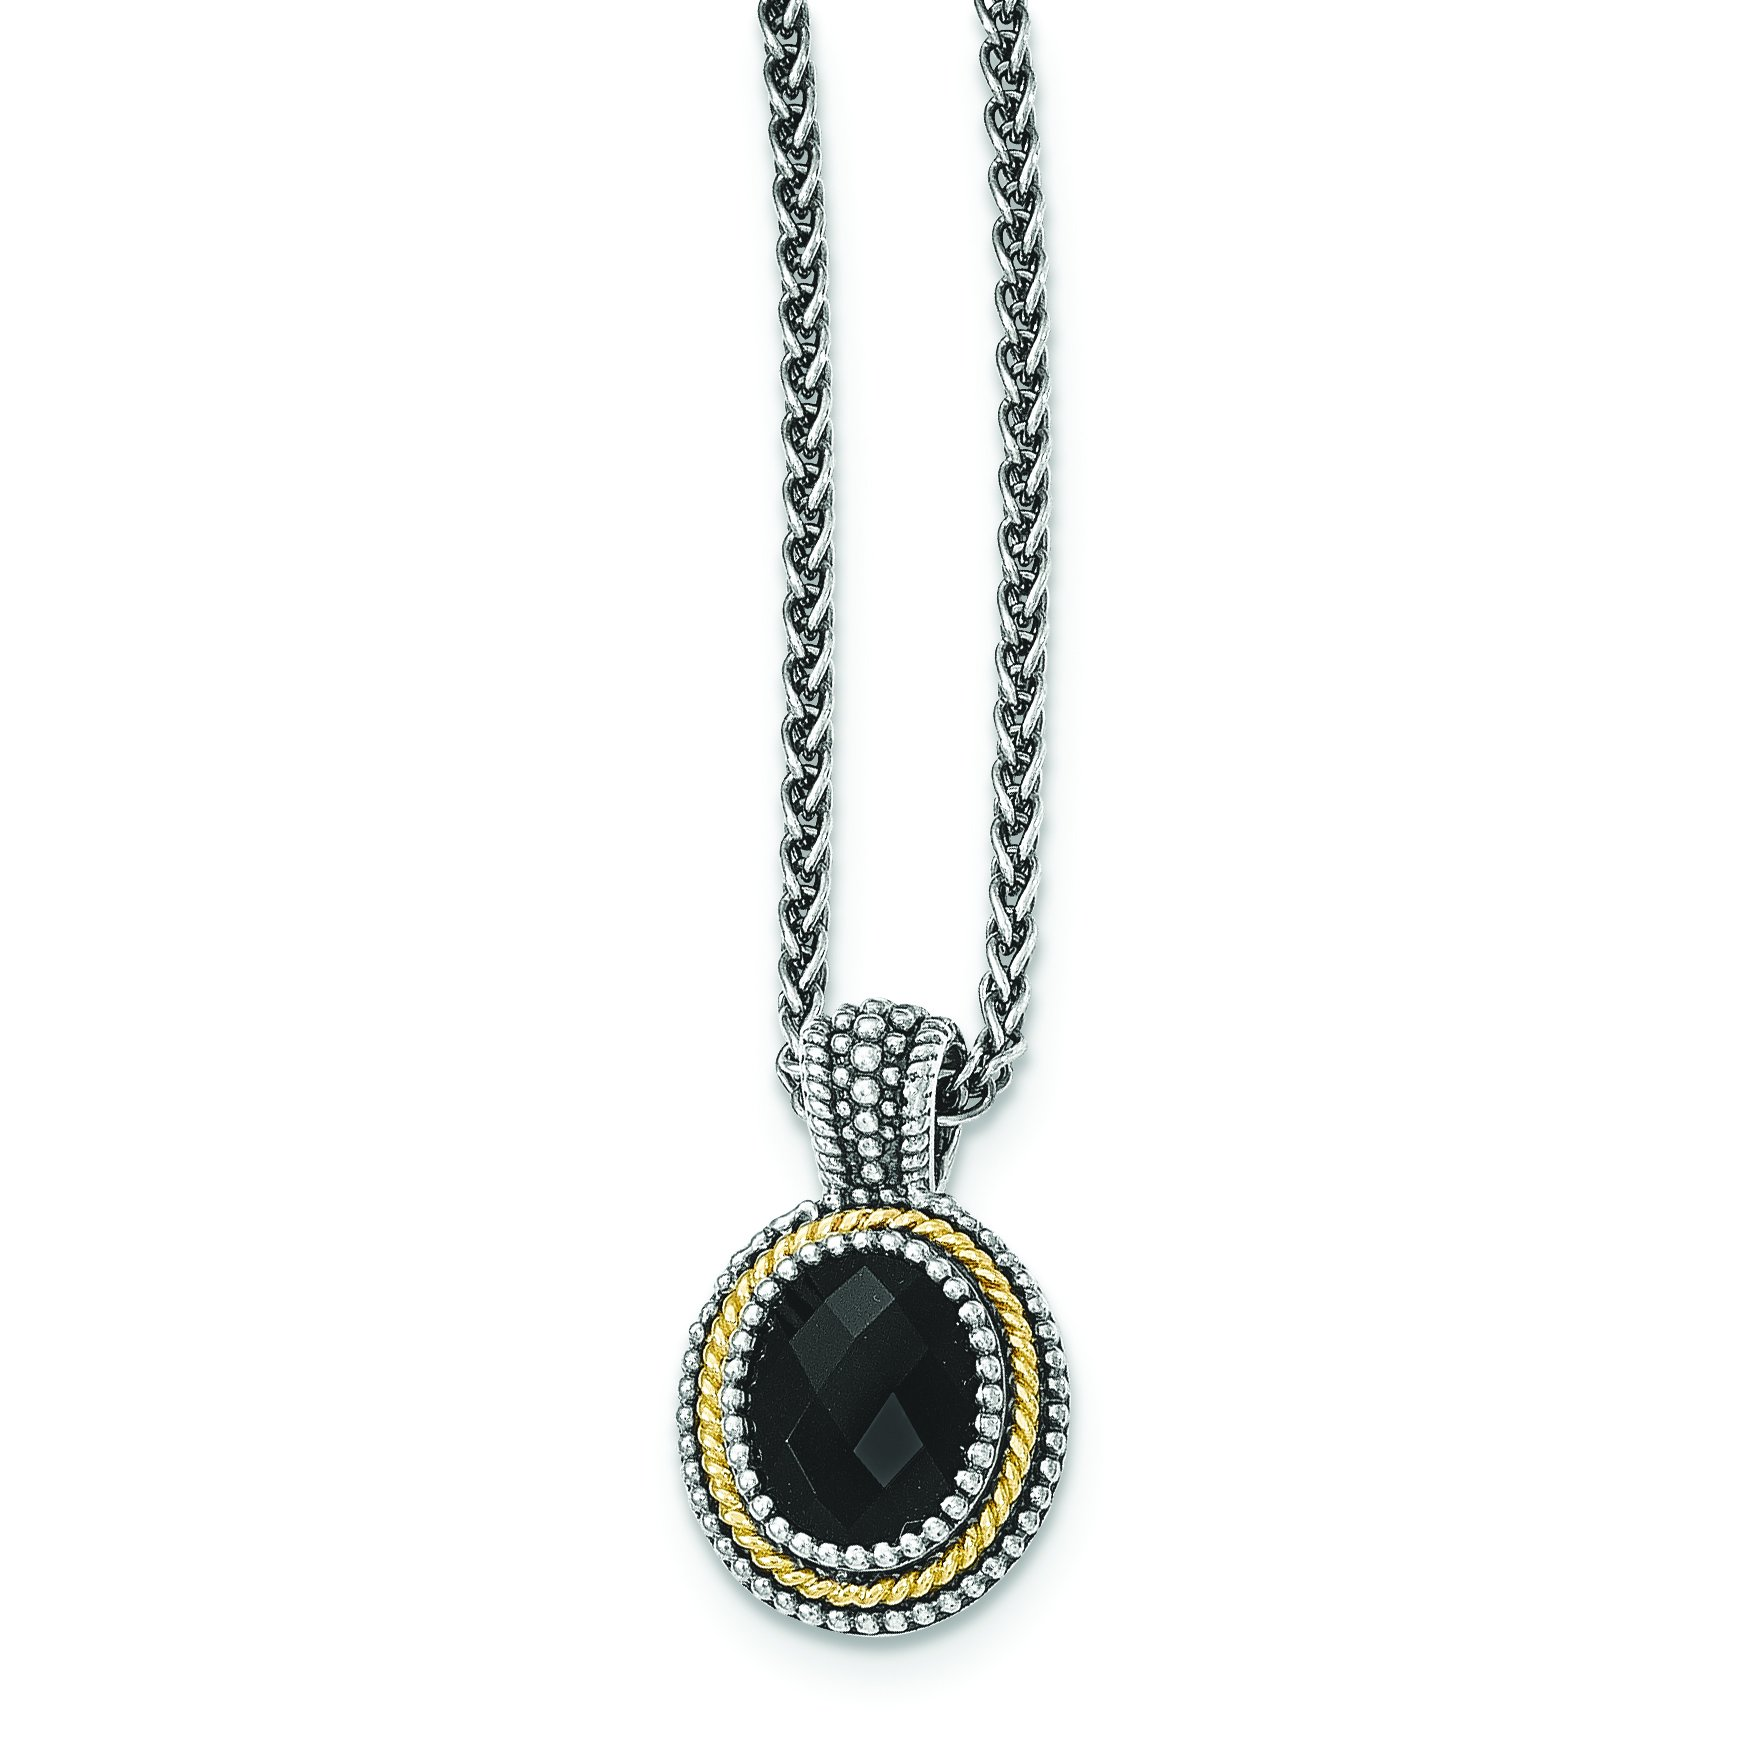 ICE CARATS 925 Sterling Silver 14k Black Onyx Chain Necklace Gemstone Fine Jewelry Gift Set For Women Heart